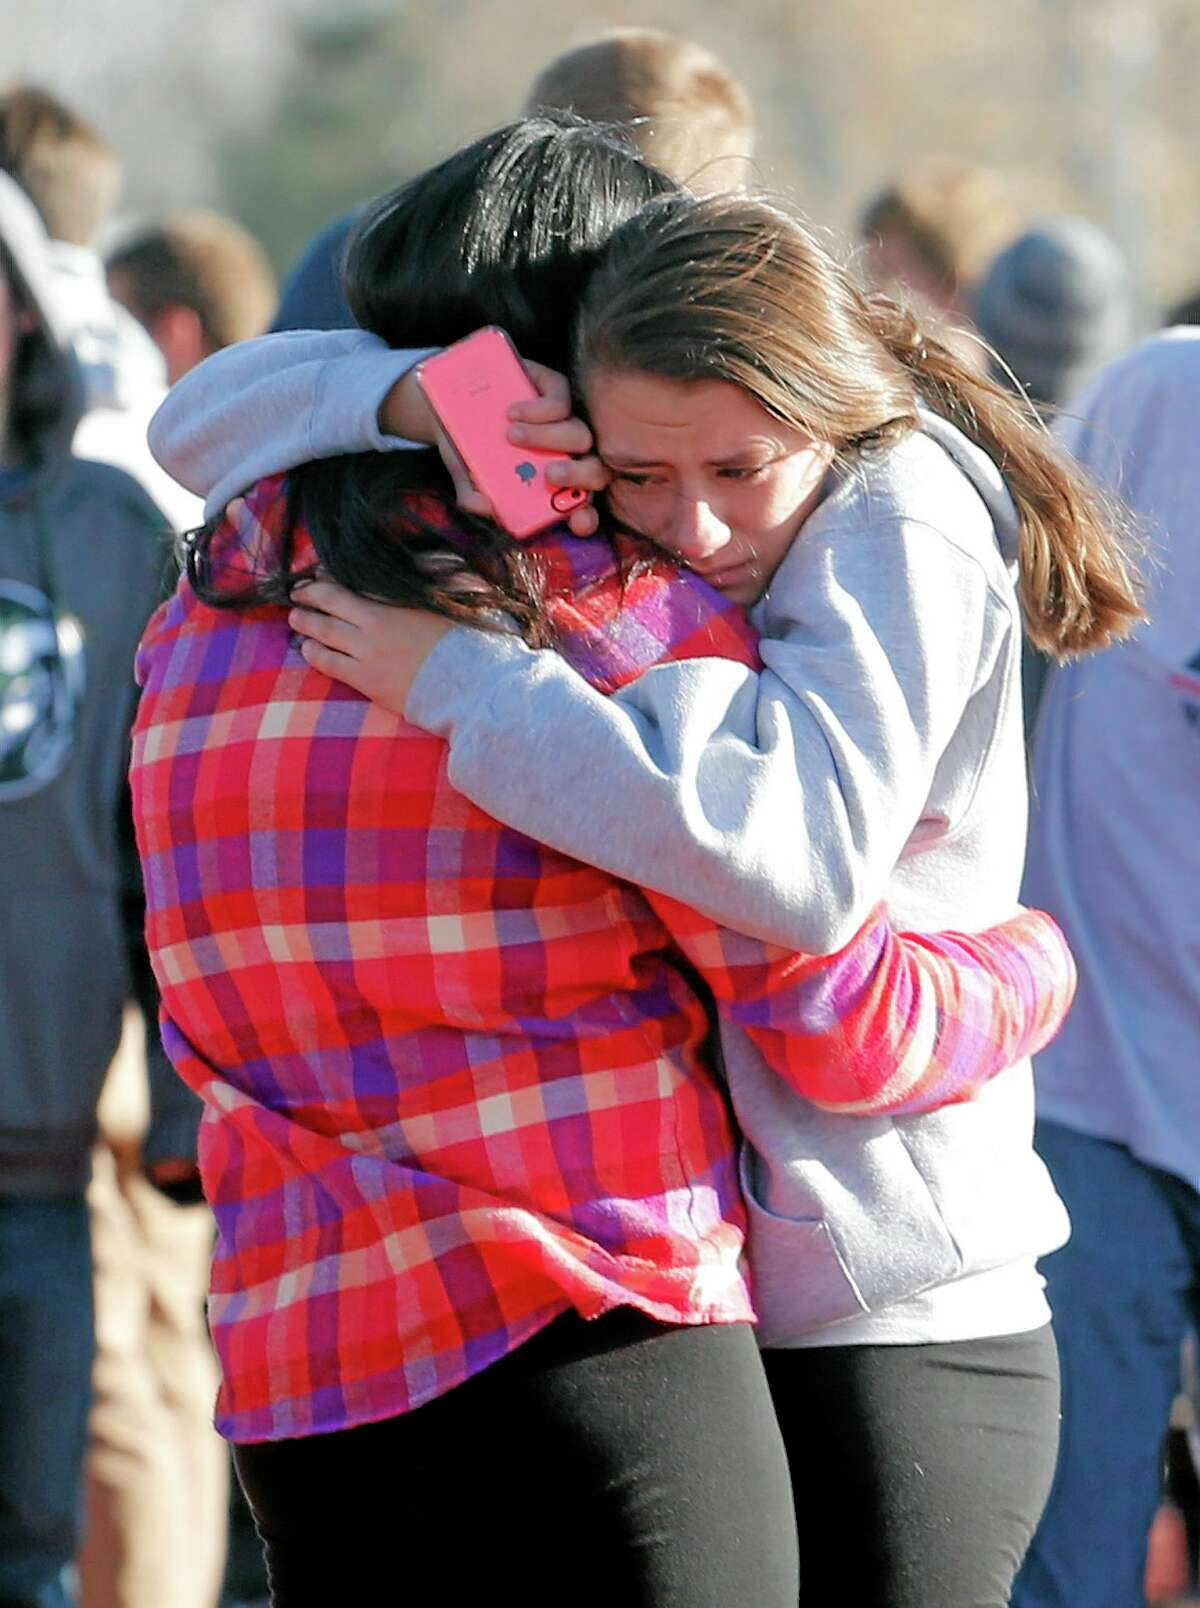 Students comfort each other outside Arapahoe High School in Centennial, Colo., Friday.